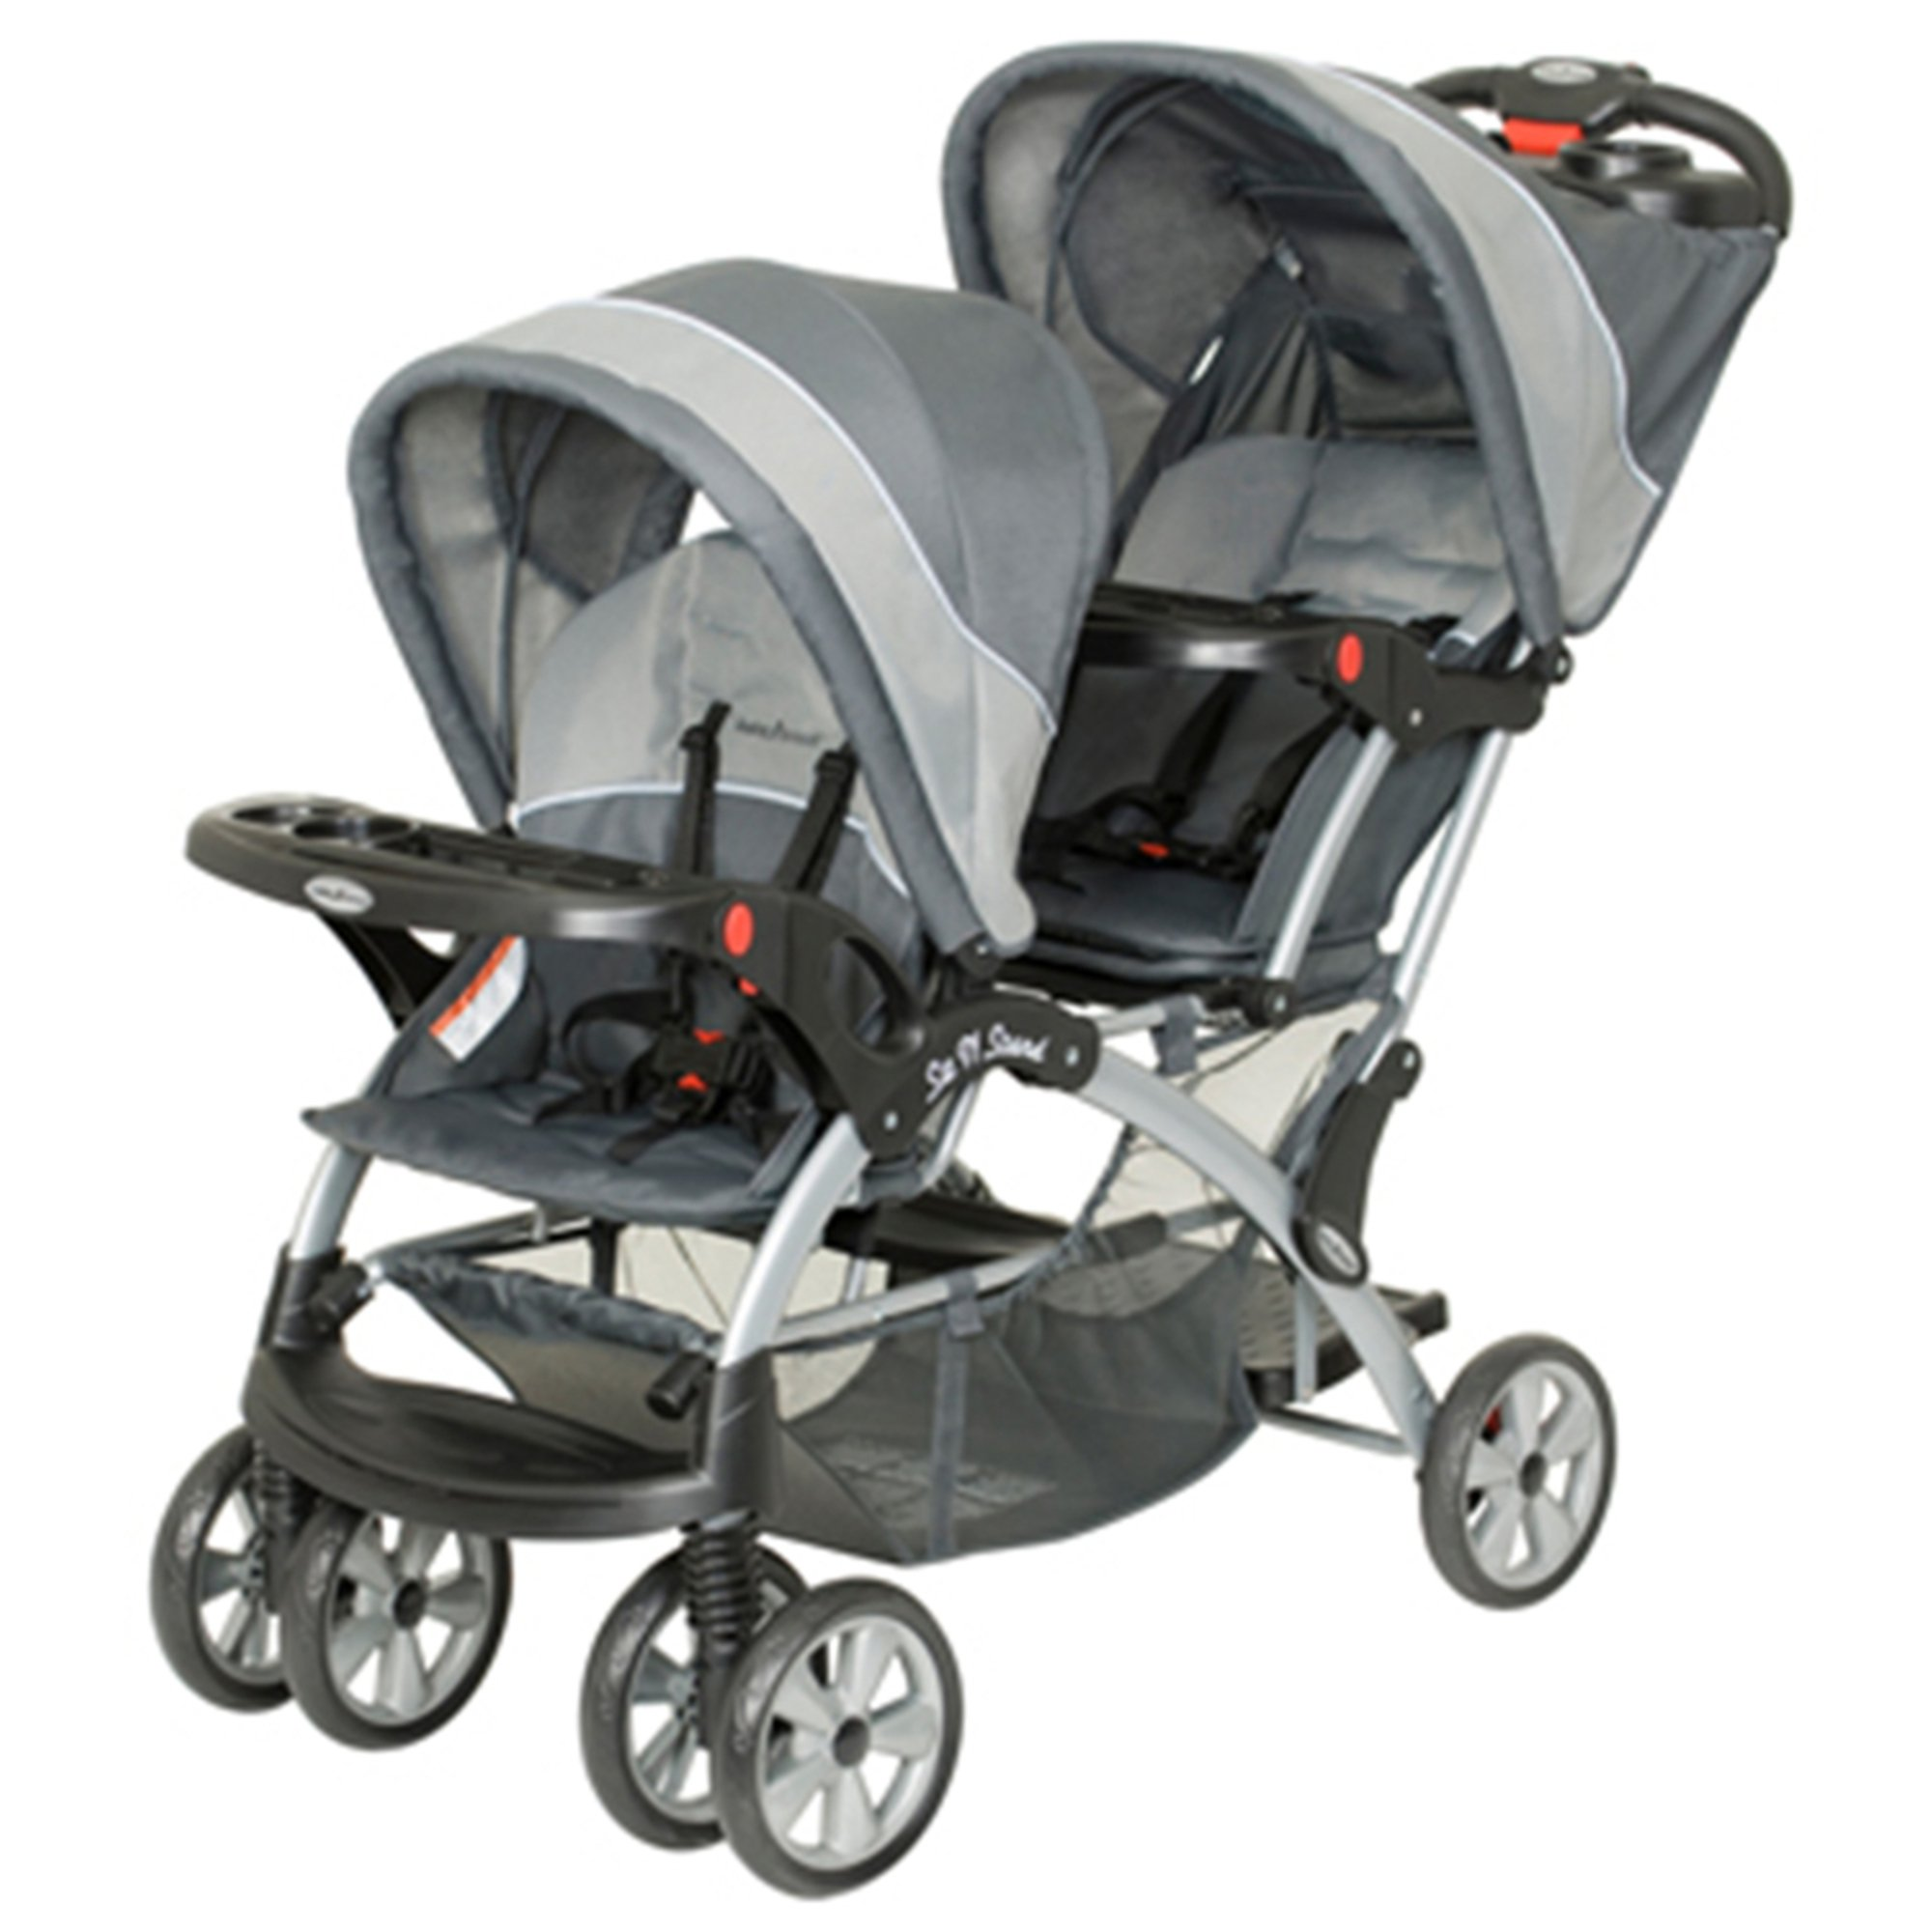 Baby Trend Sit N Stand Double Stroller Pistachio: 0